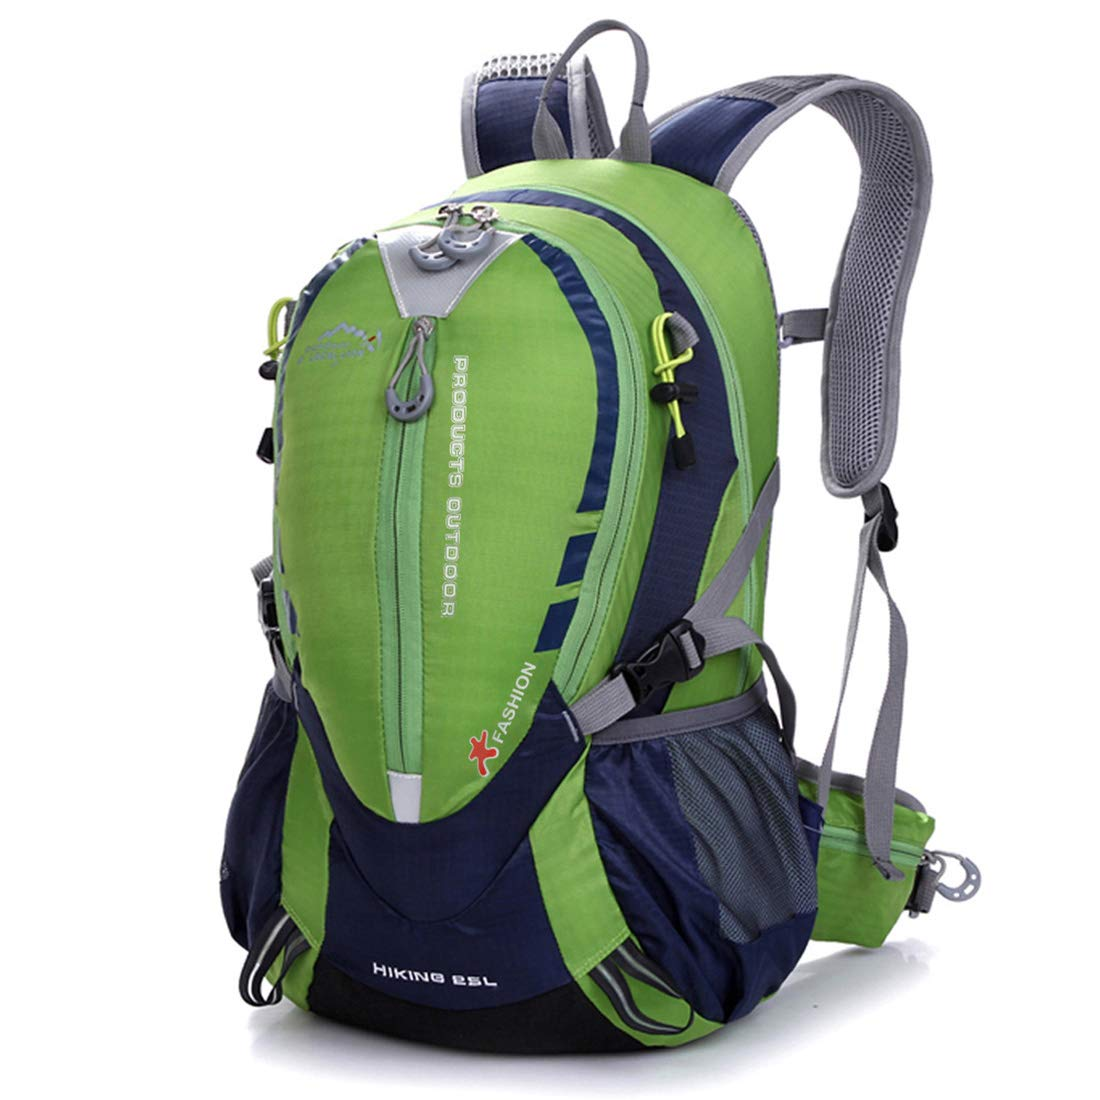 Lokijuge Backpacks Outdoor Shoulder Riding Backpack Traveling High Capacity Multifunction Apply to A Sports Fan